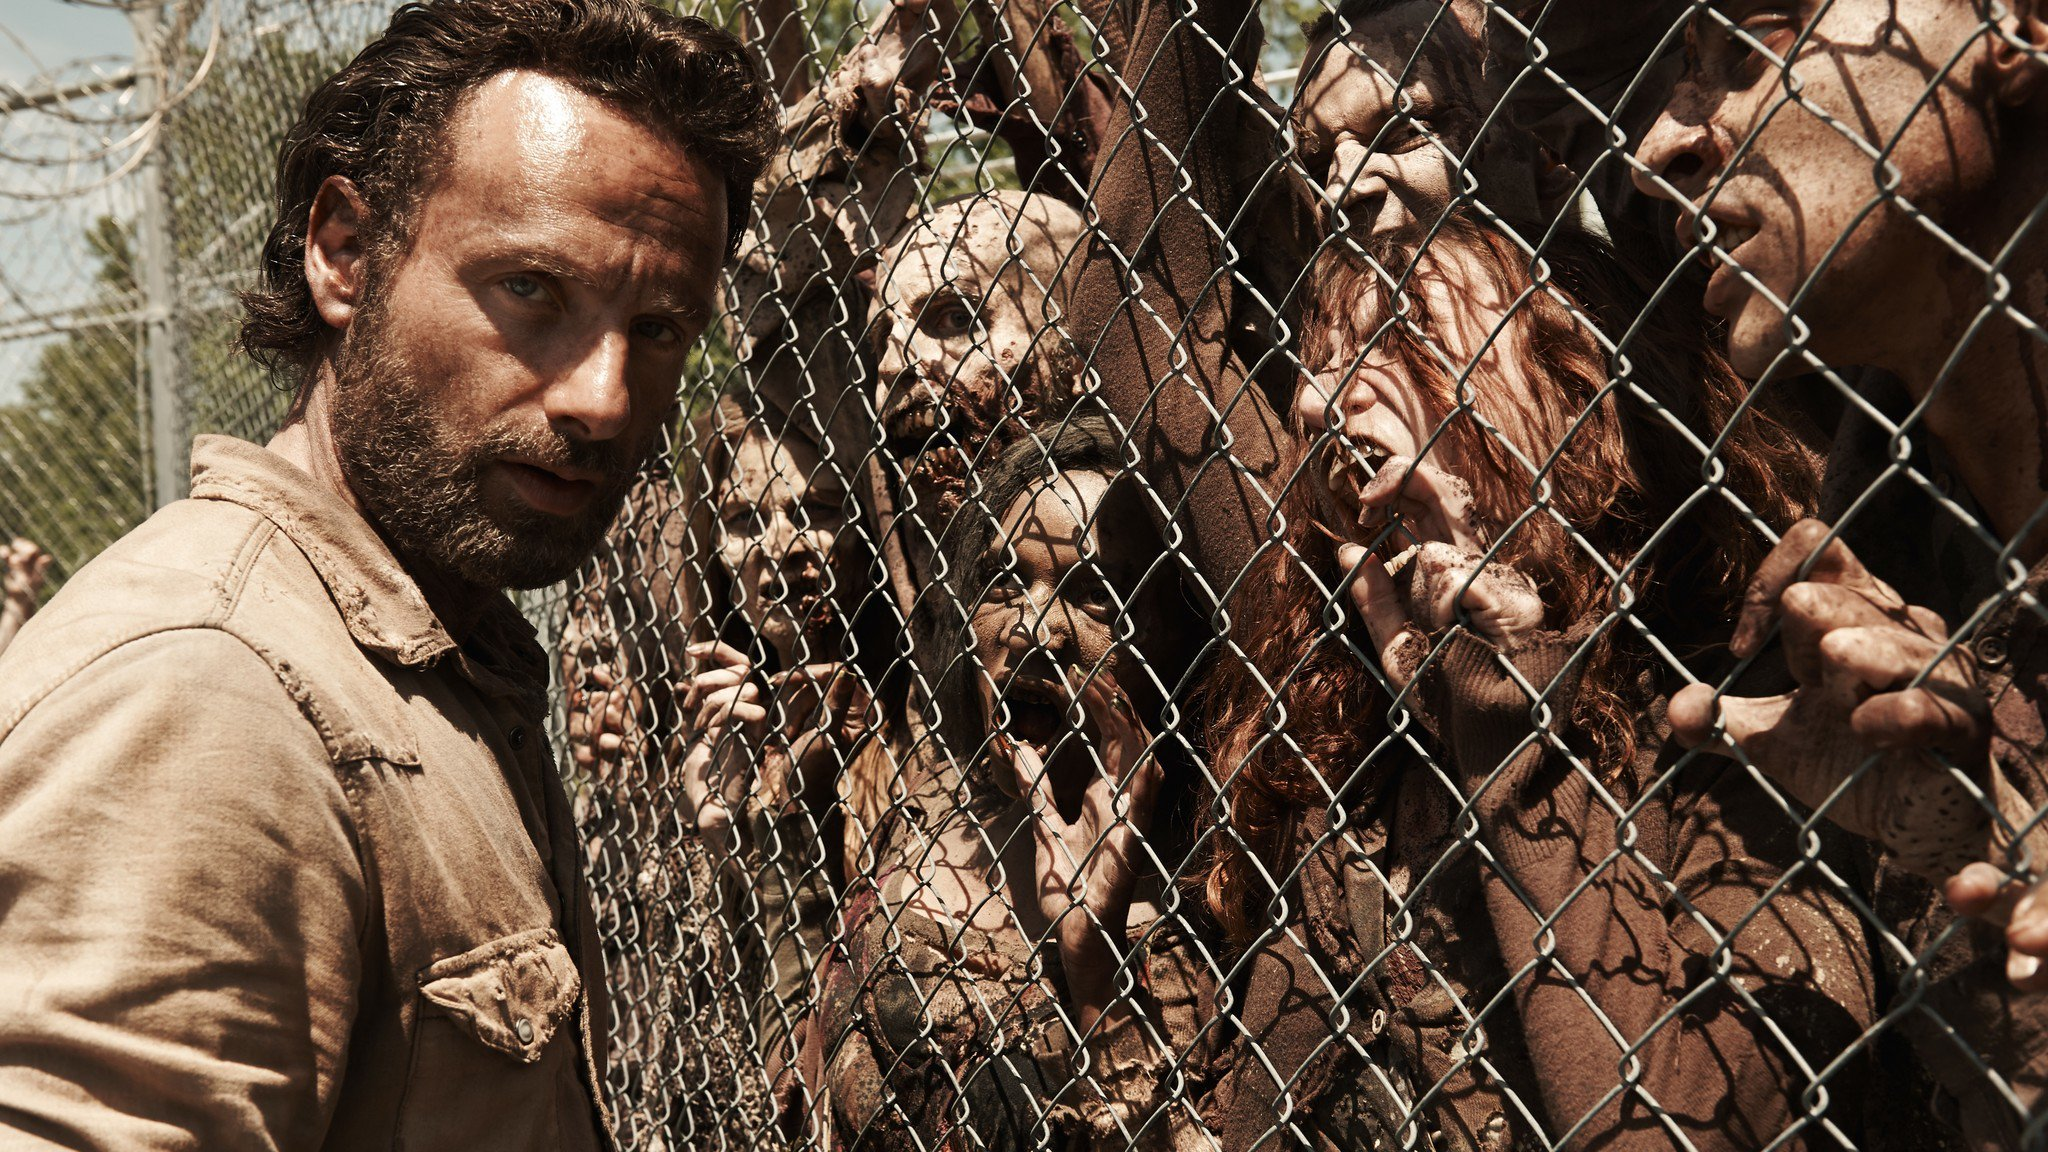 zap-the-walking-dead-season-4-pics-039